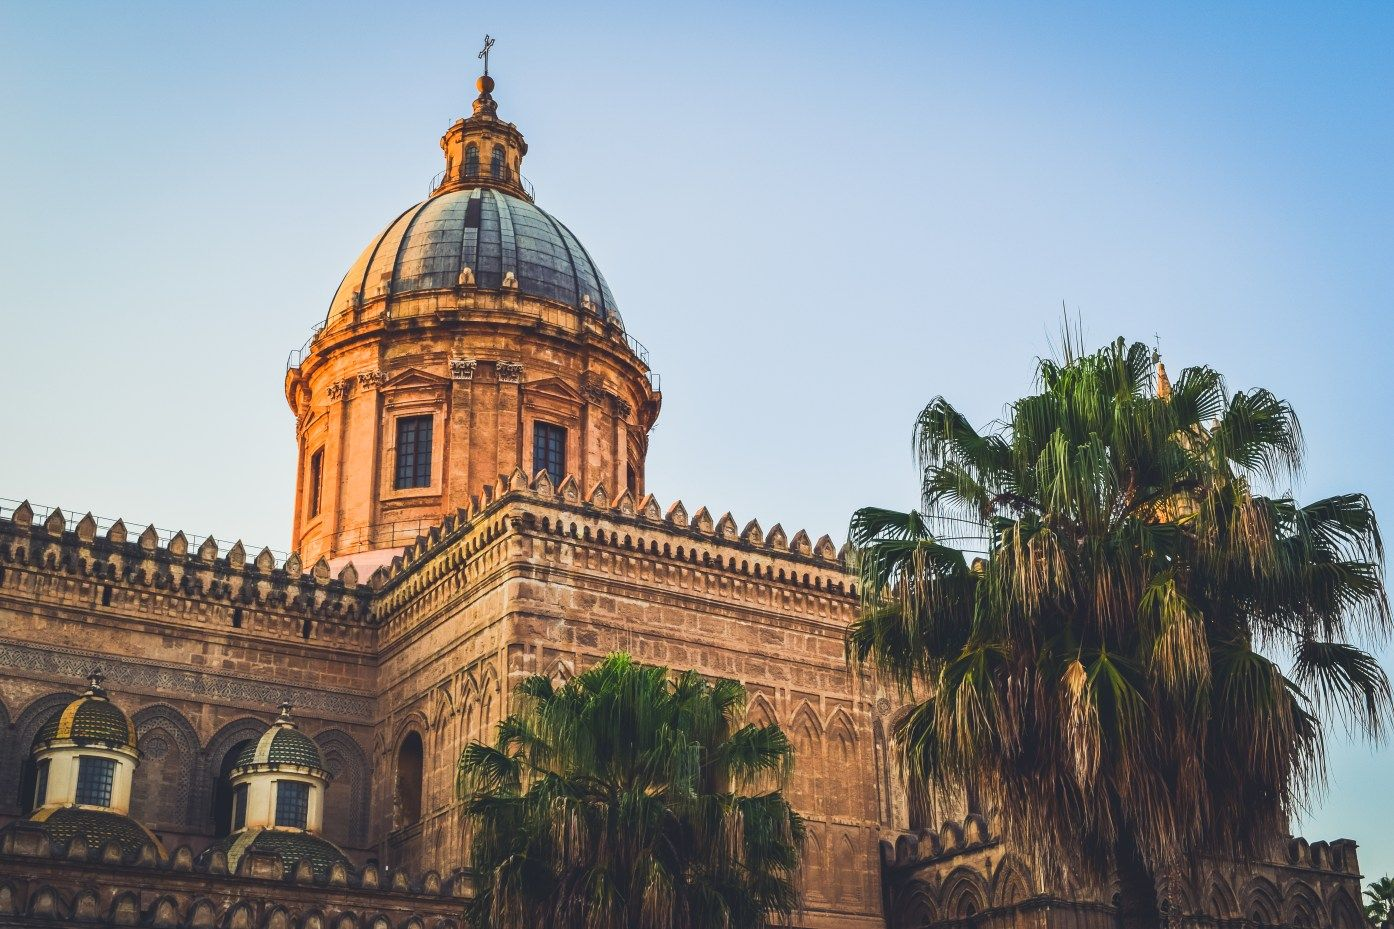 Travel guide to sicily palermo city historical district town medieval normanno norman arabic arabo history best of italy sicily sicilia what to do see italy best time of year-15